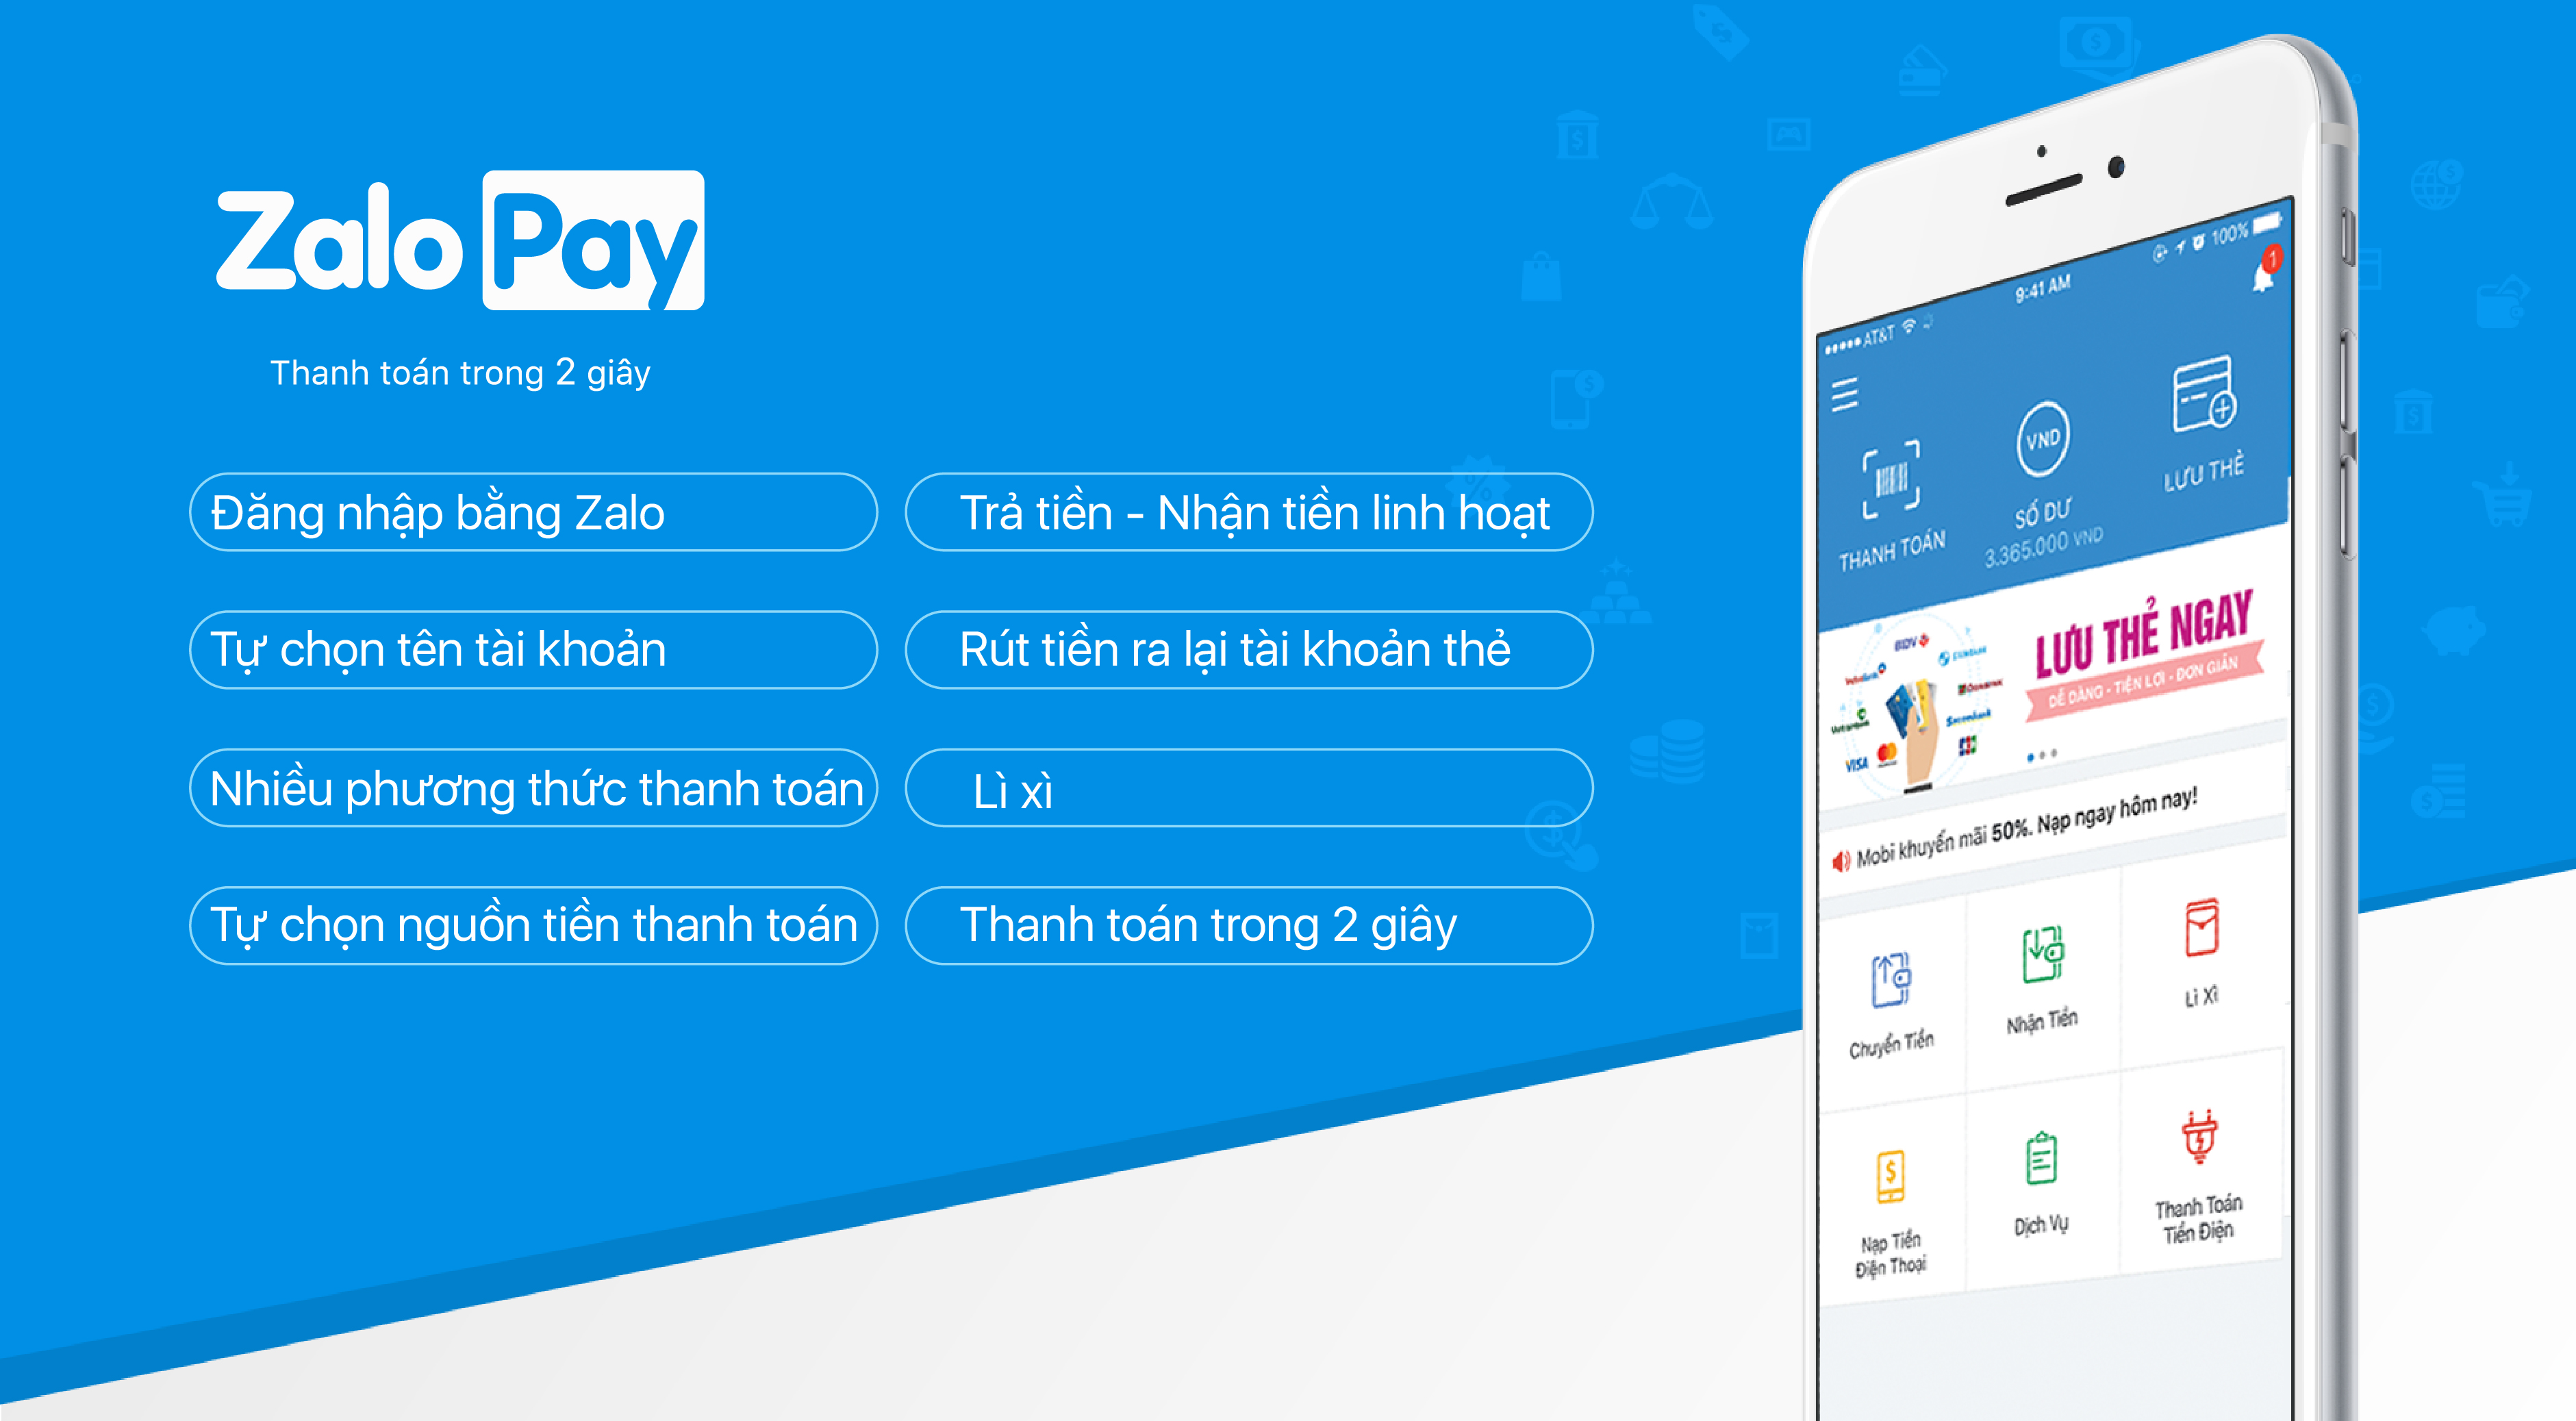 Vietnam's Zalo Pay Brings Payments To Social Media in